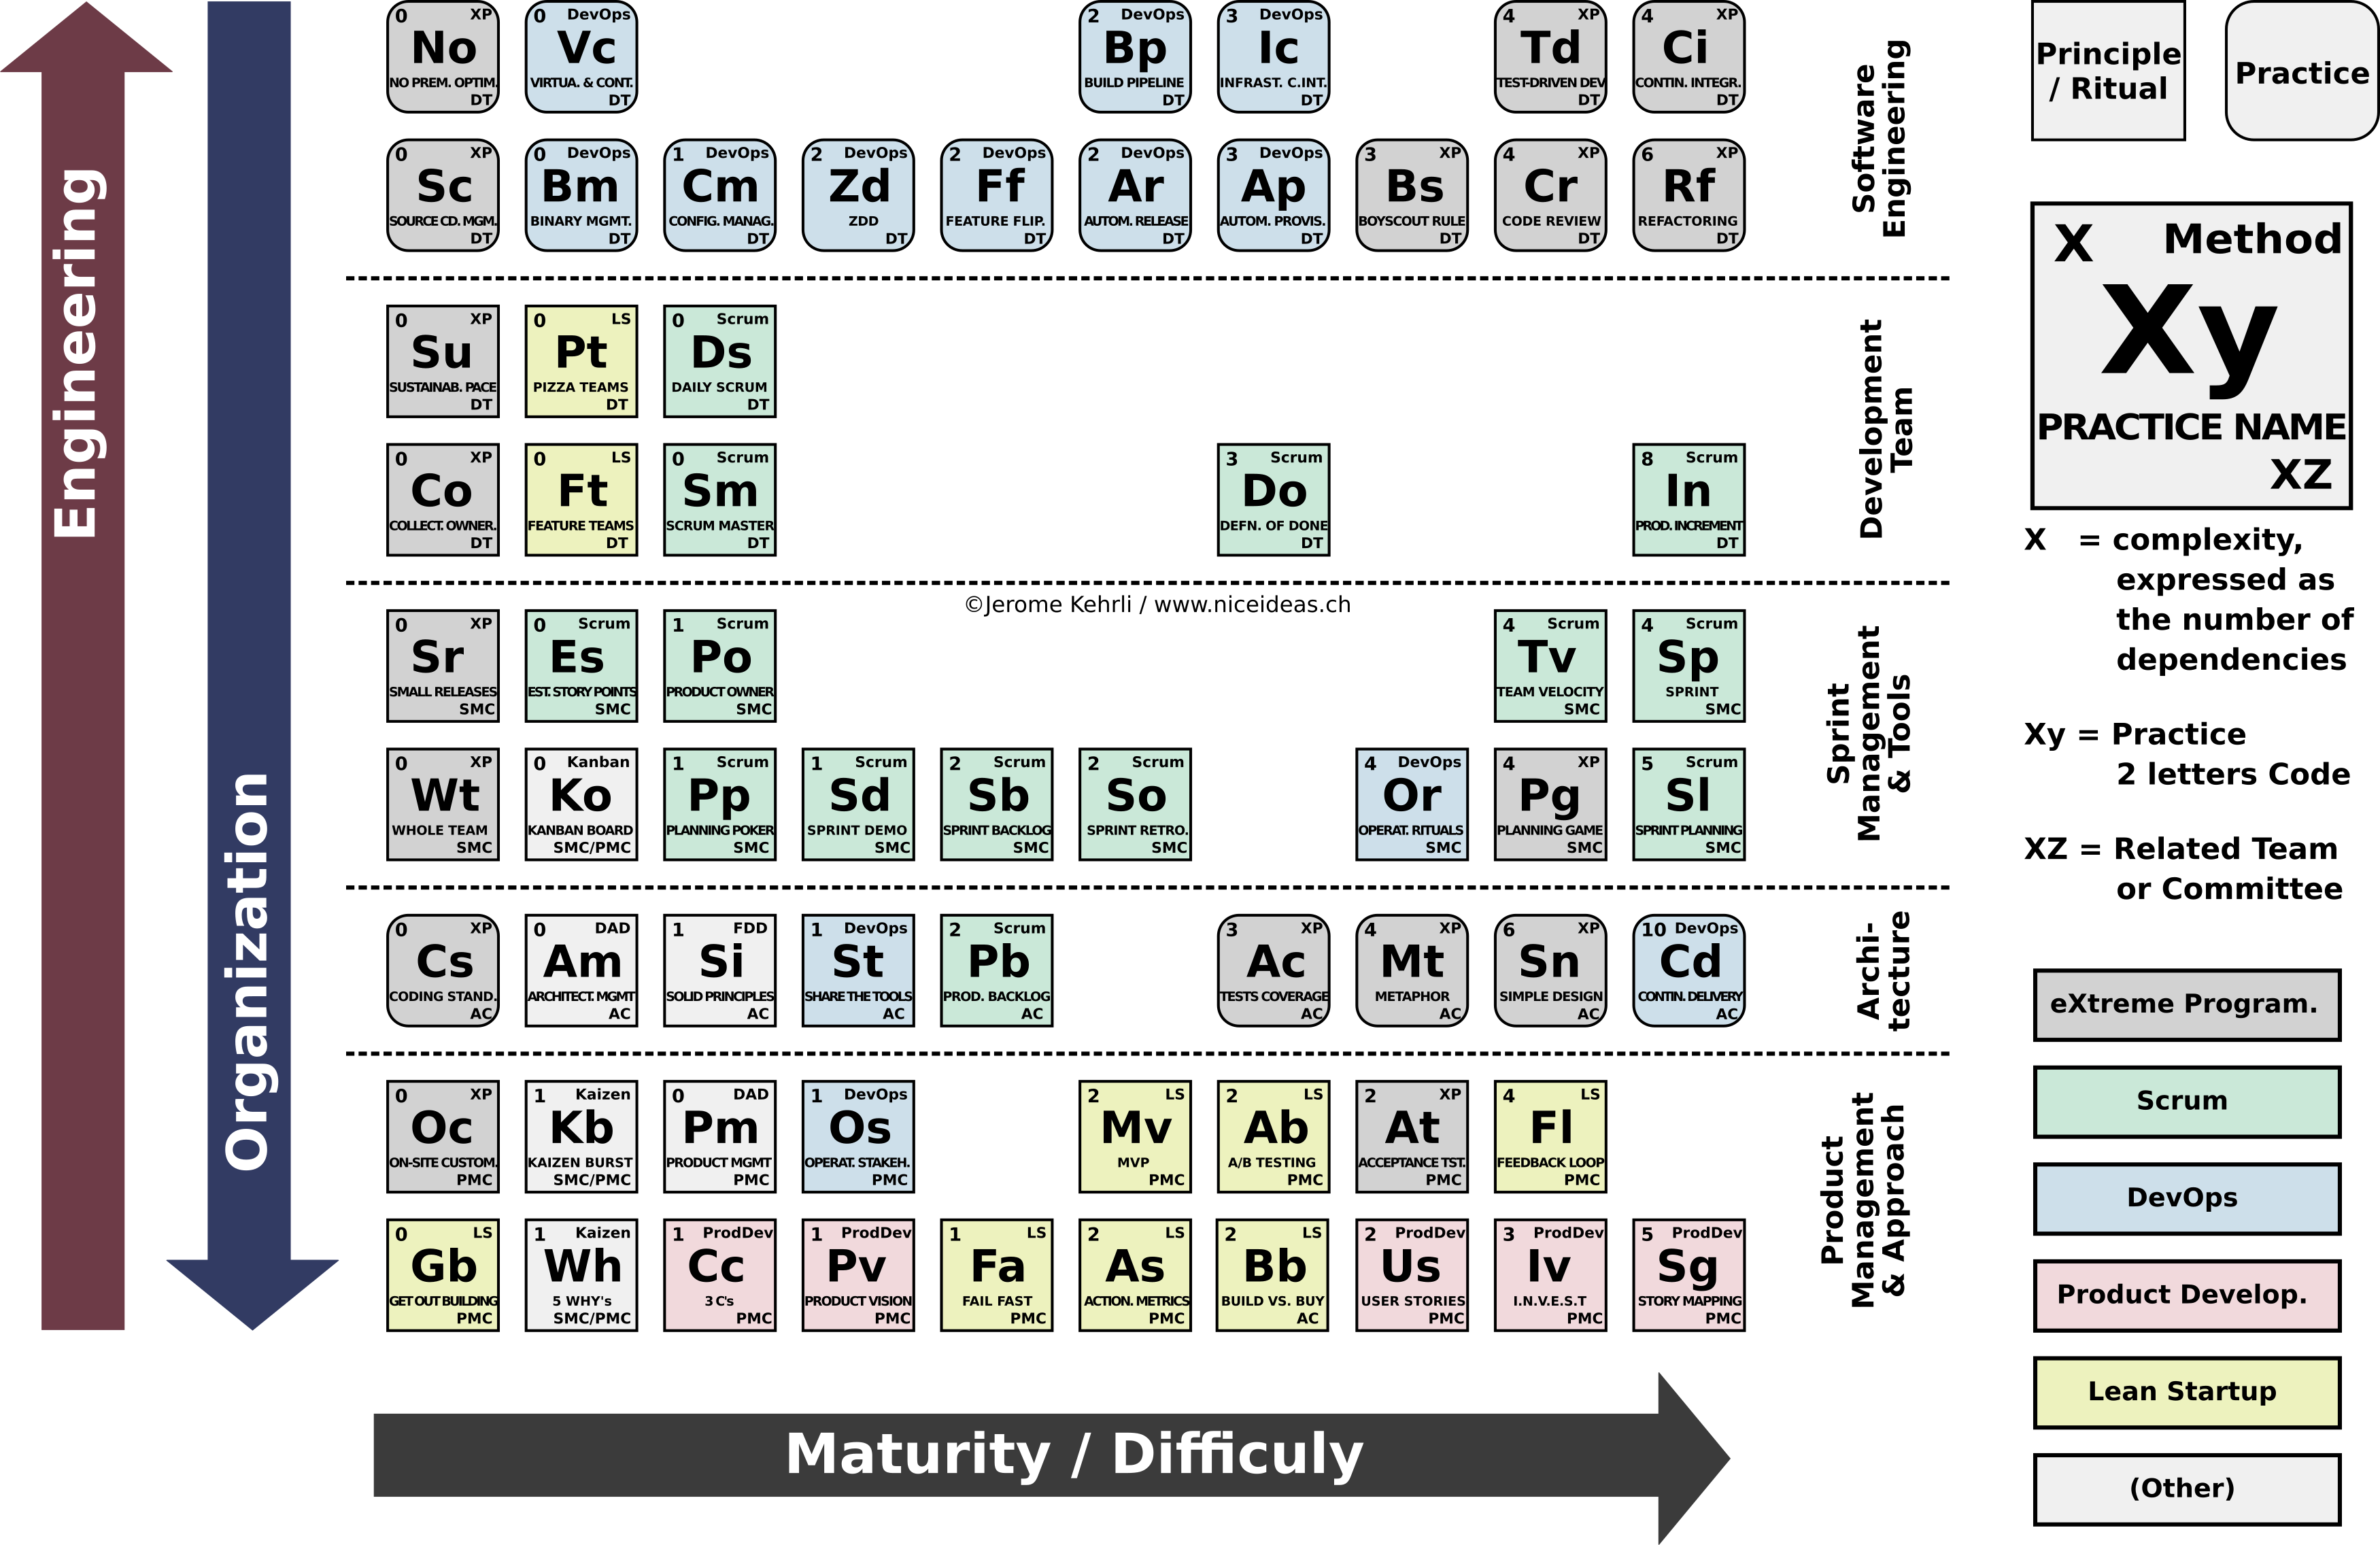 Niceideas periodic table of agile principles and practices periodic table of agile principles and practices explanations gamestrikefo Image collections